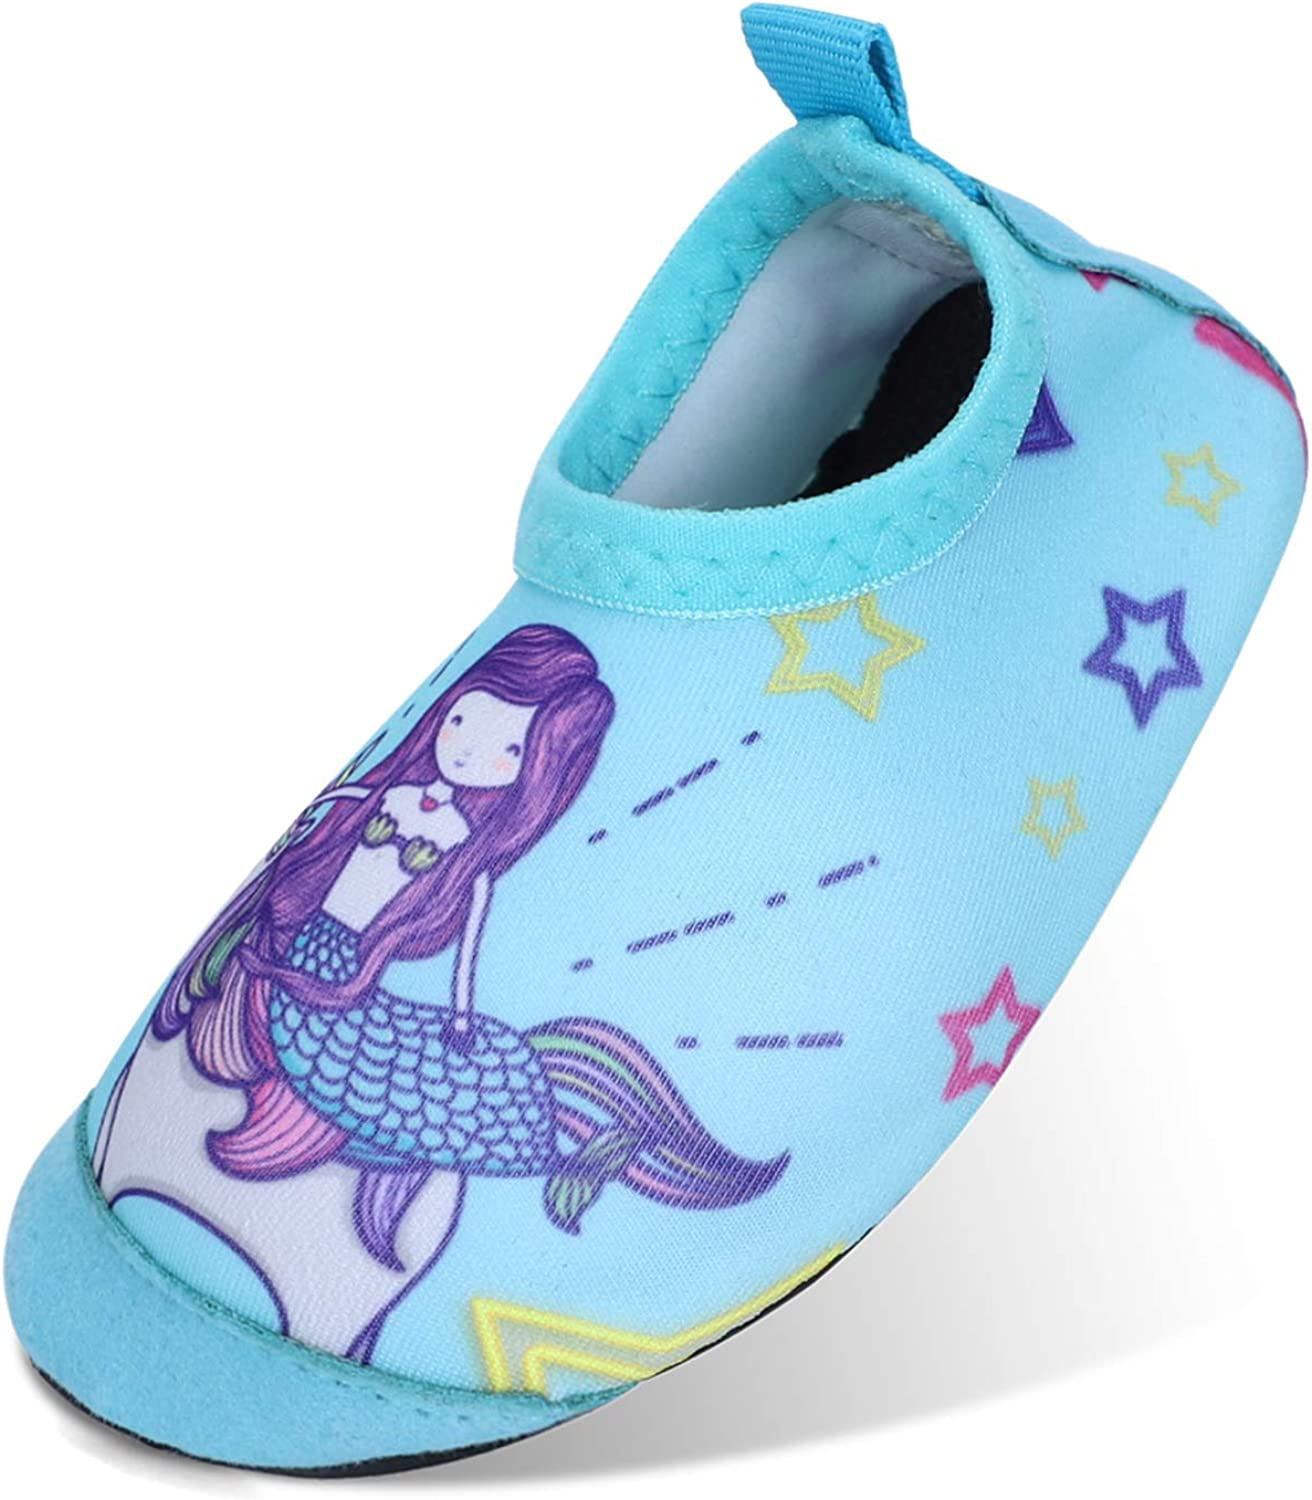 ESTAMICO Large special price Kids Swim Water Shoes Lightweight Non-S Challenge the lowest price of Japan Cartoon Toddler